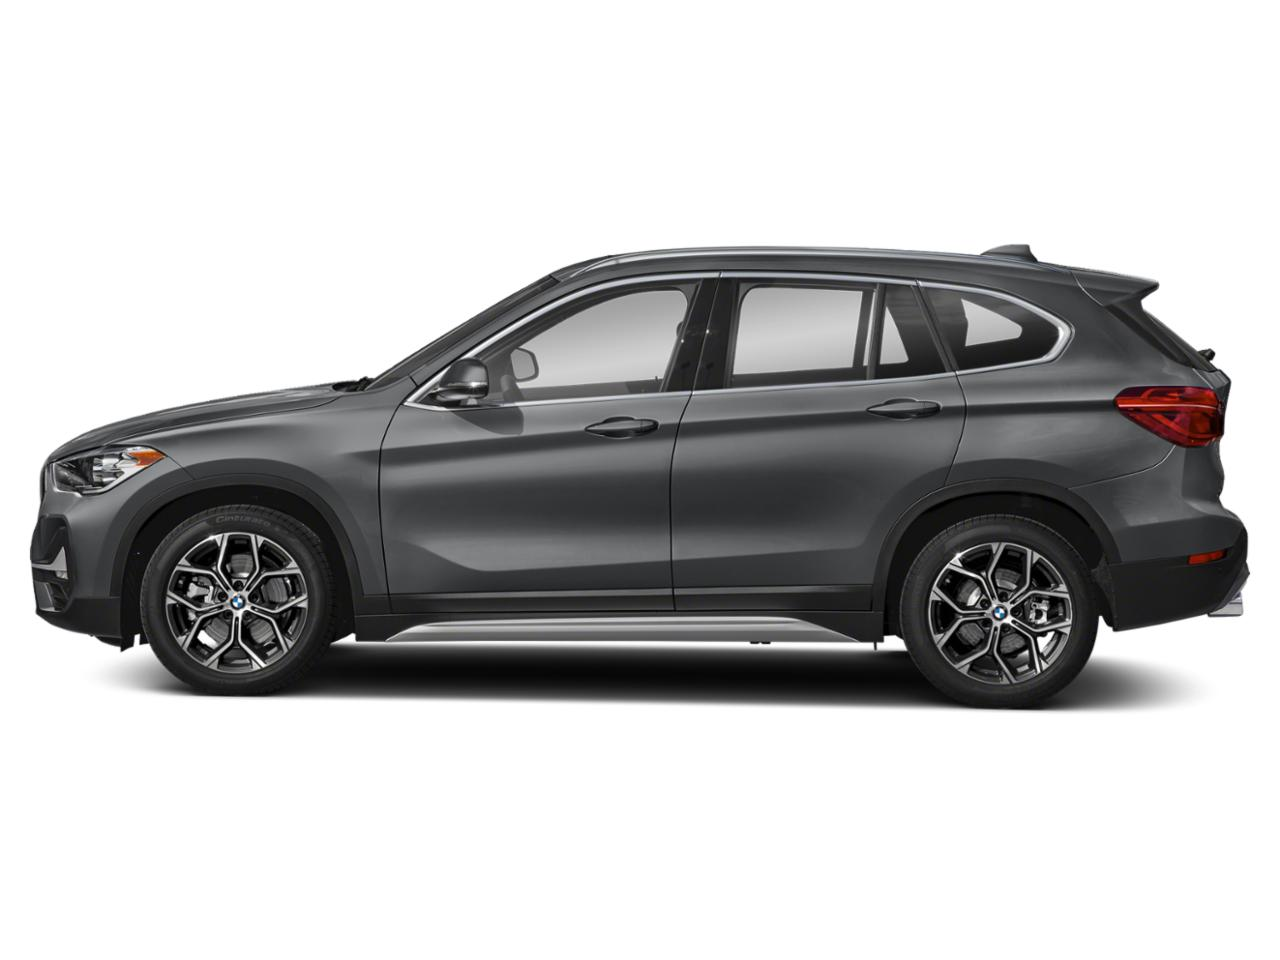 Mineral Gray Metallic 2021 Bmw X1 Sdrive28i Used Suv For Sale In Long Beach 99m5s23159